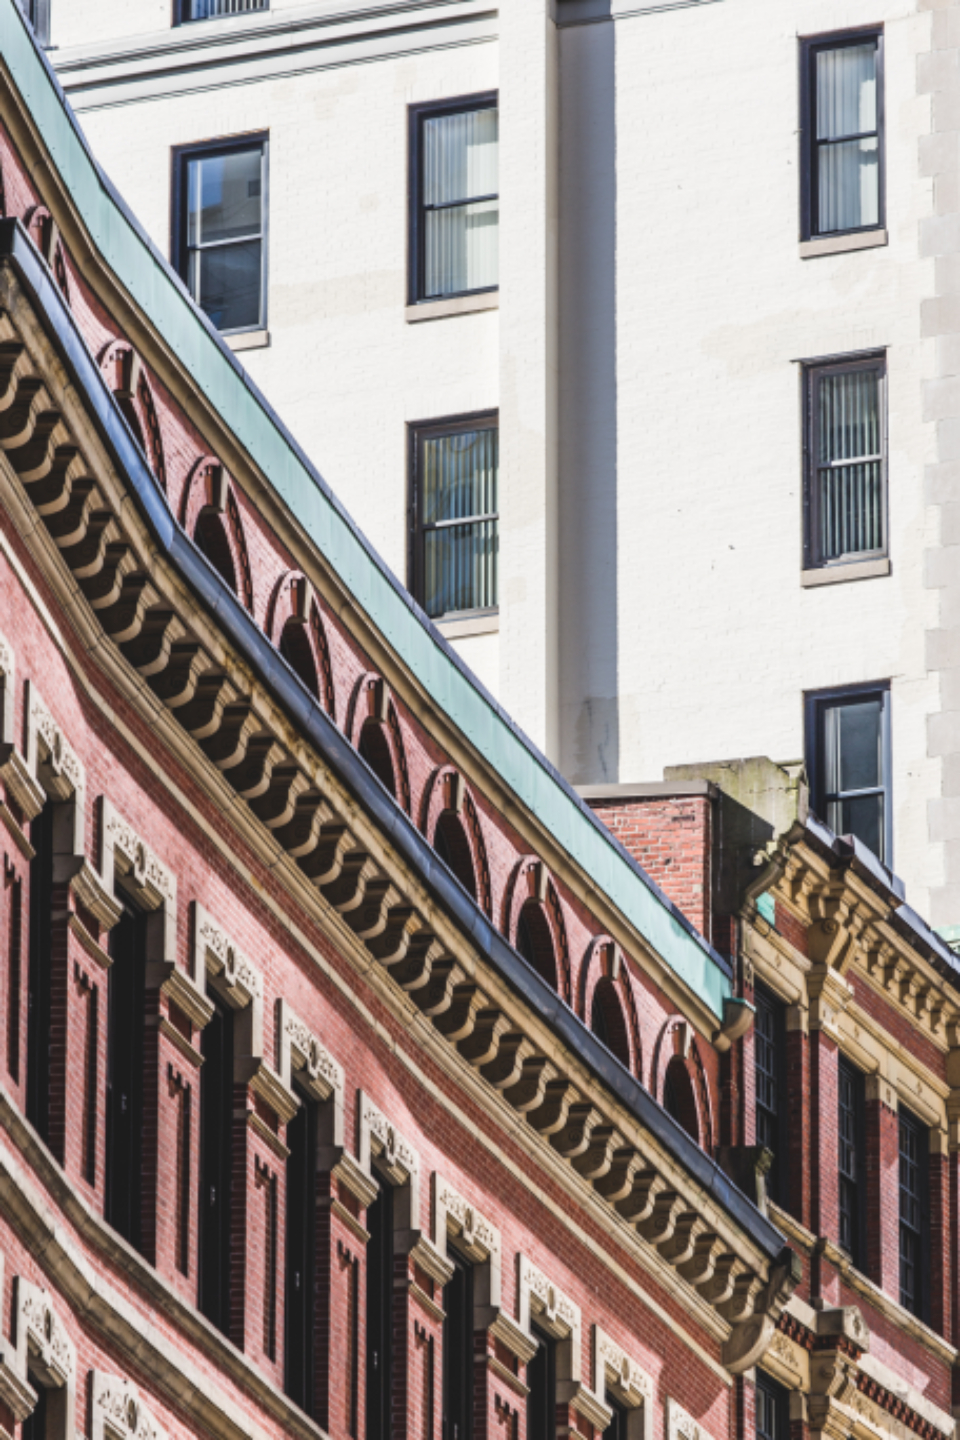 ornate facade building brick exterior windows design architecture wall apartment business city classic structure old